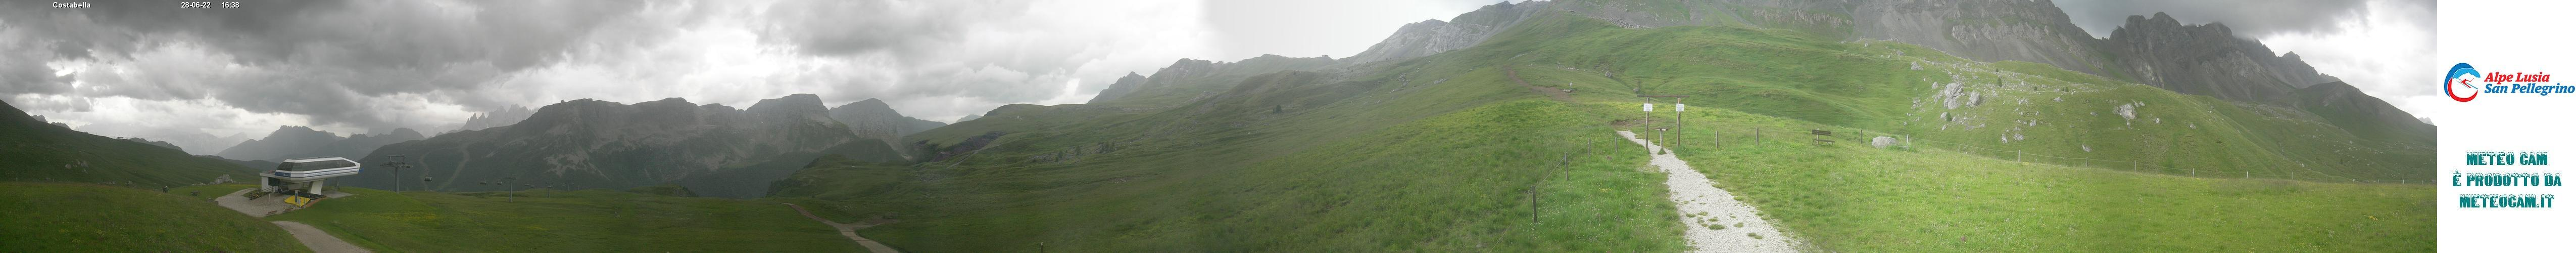 Webcam panorama realtime 360° Passo San Pellegrino - Costabella - Altitude:2,175 metresArea:Costabella chair liftPanoramic viewpoint:webcam real time 360°. Slopes and lifts outlook in direction of San Pellegrino ski area. View from the uphill station of the